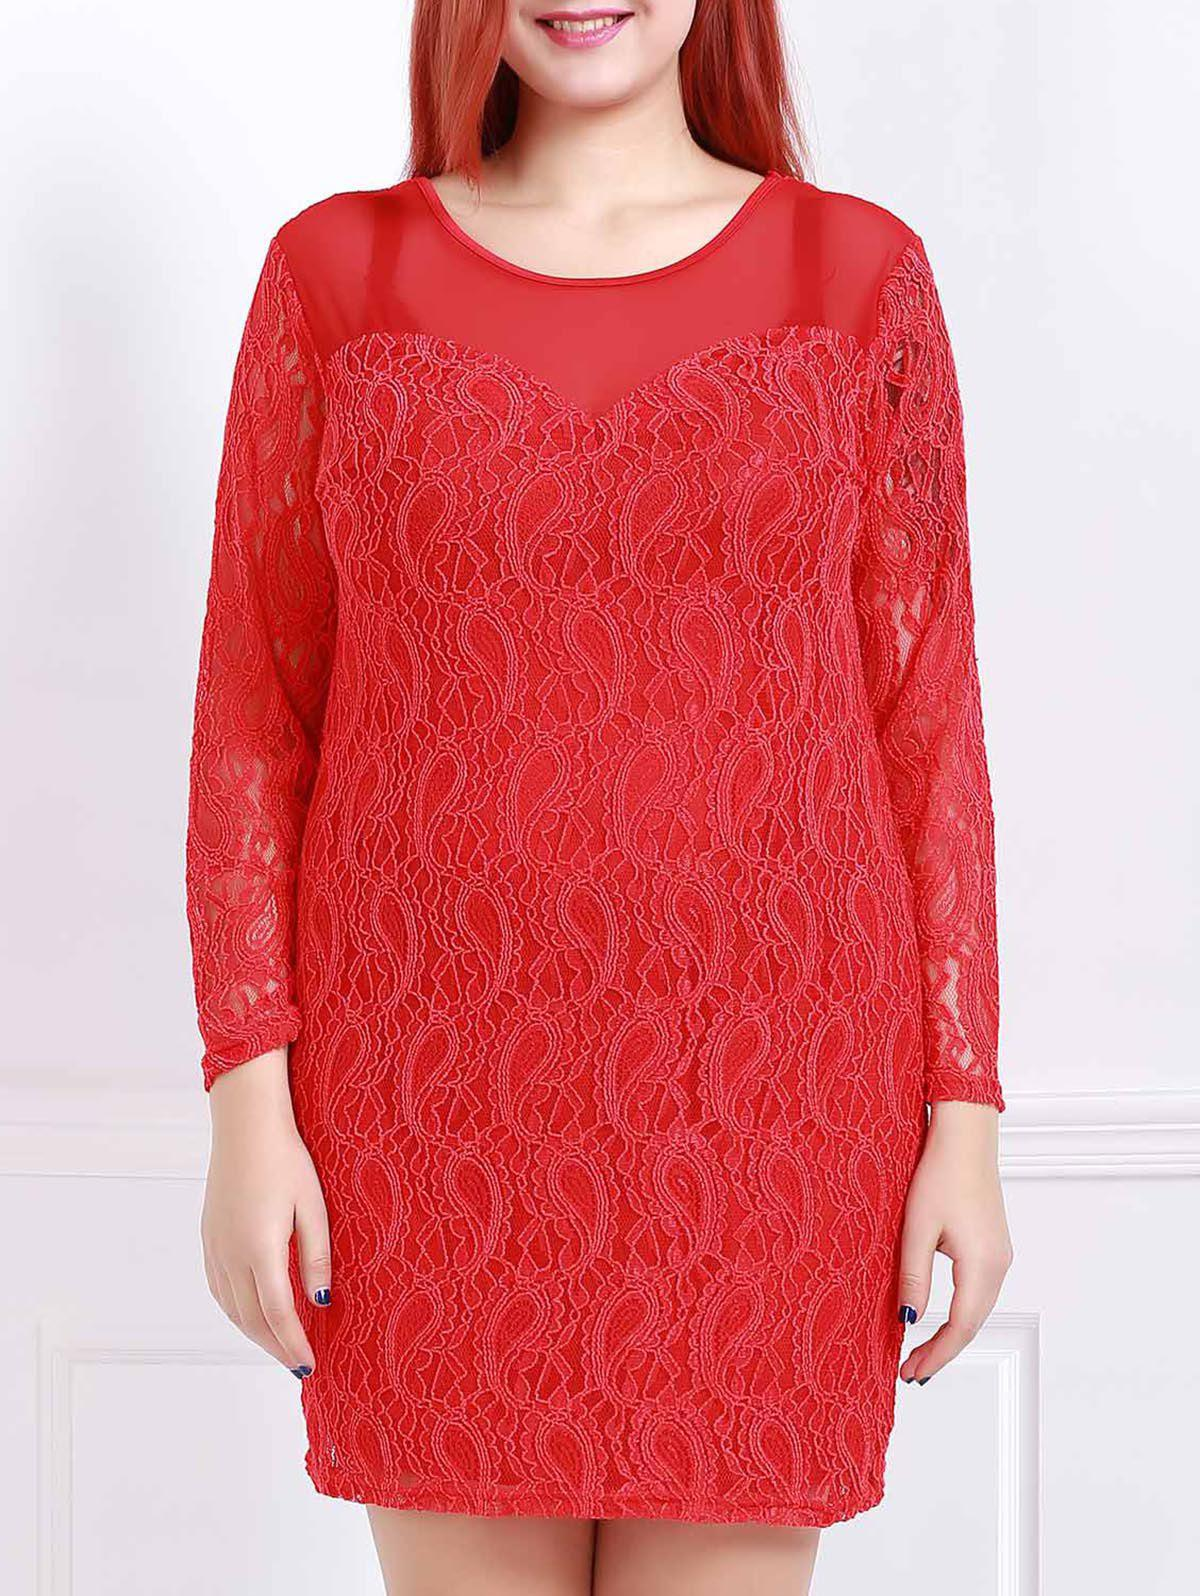 Stylish Scoop Neck 3/4 Sleeve Plus Size Solid Color Women's Lace Dress - RED 3XL